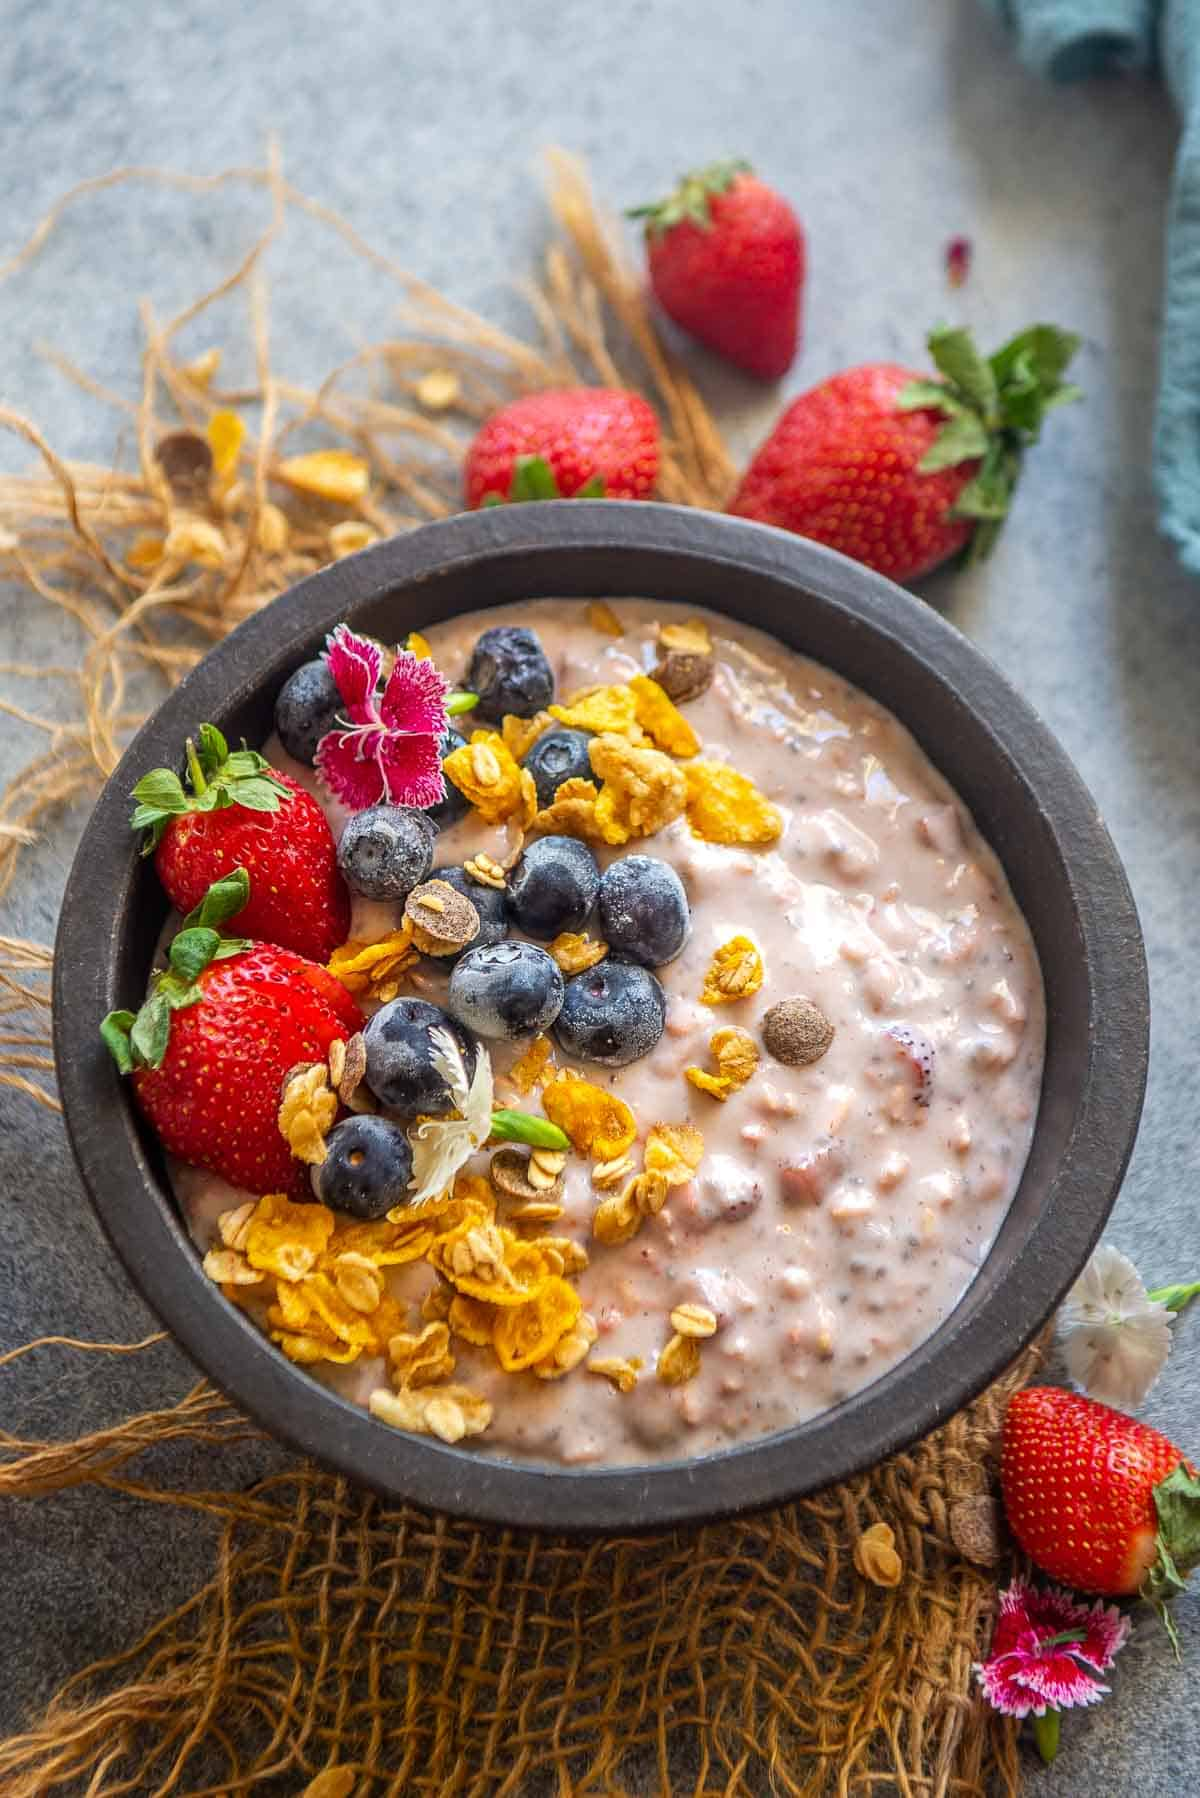 Strawberry overnight oats served in a bowl.